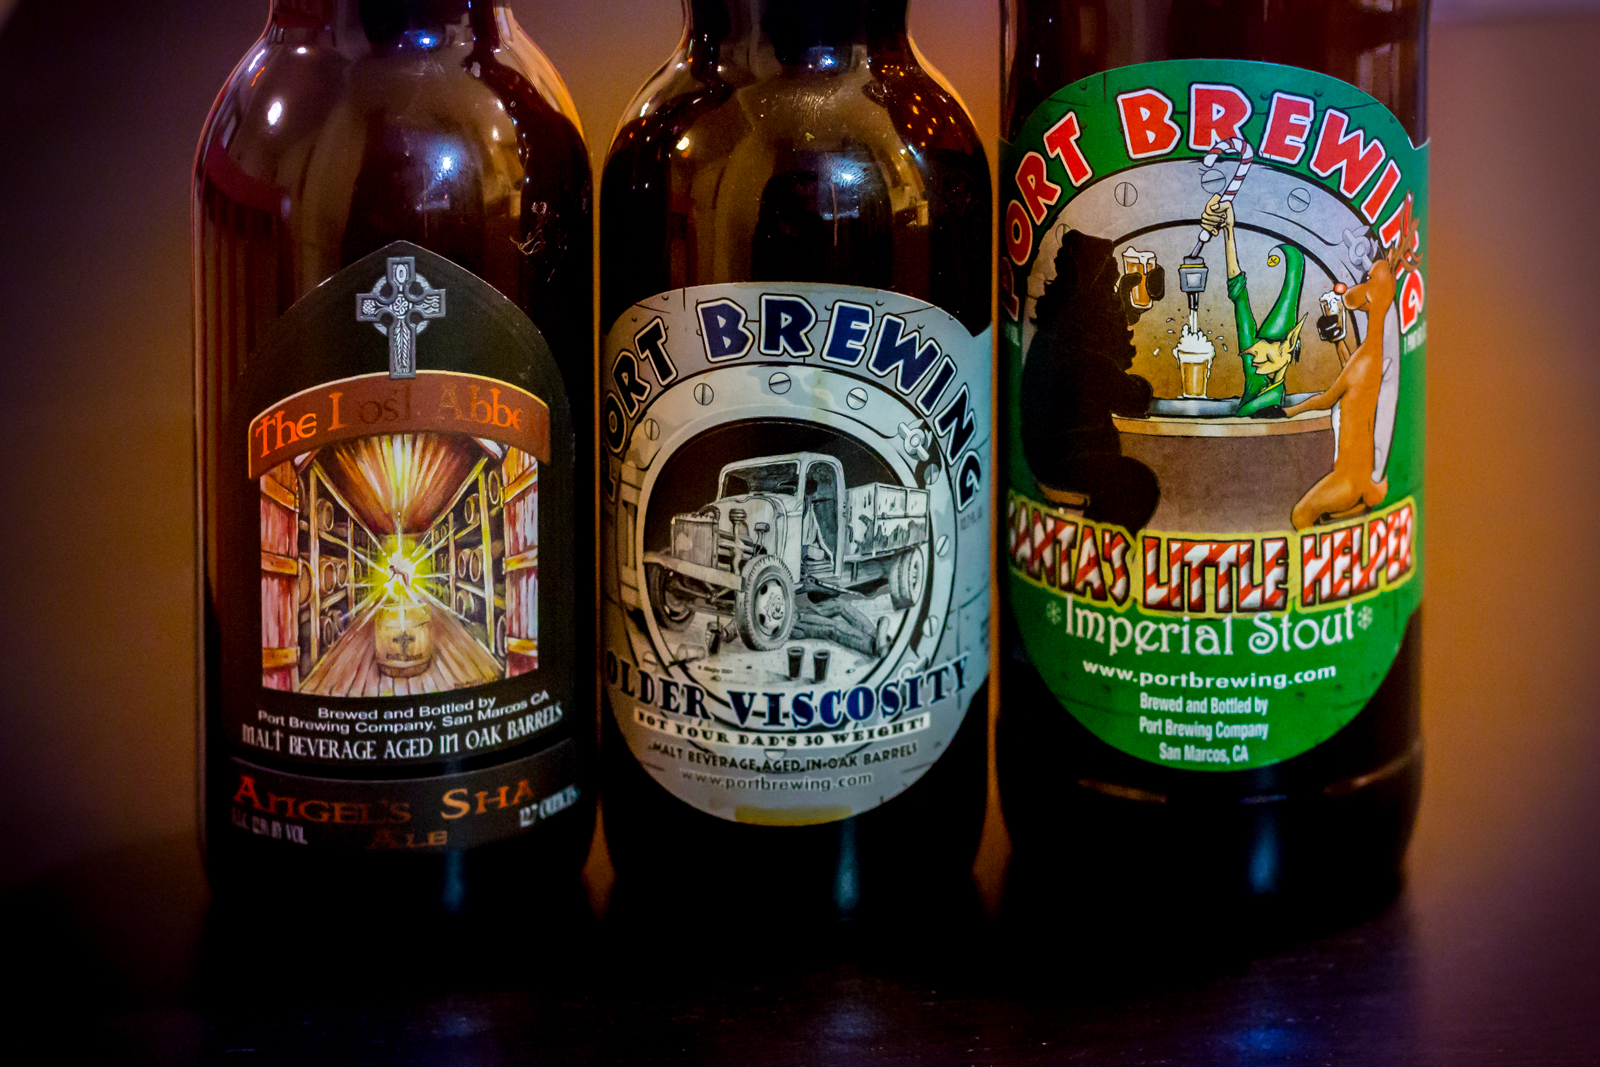 Port Brewing and Lost Abbey